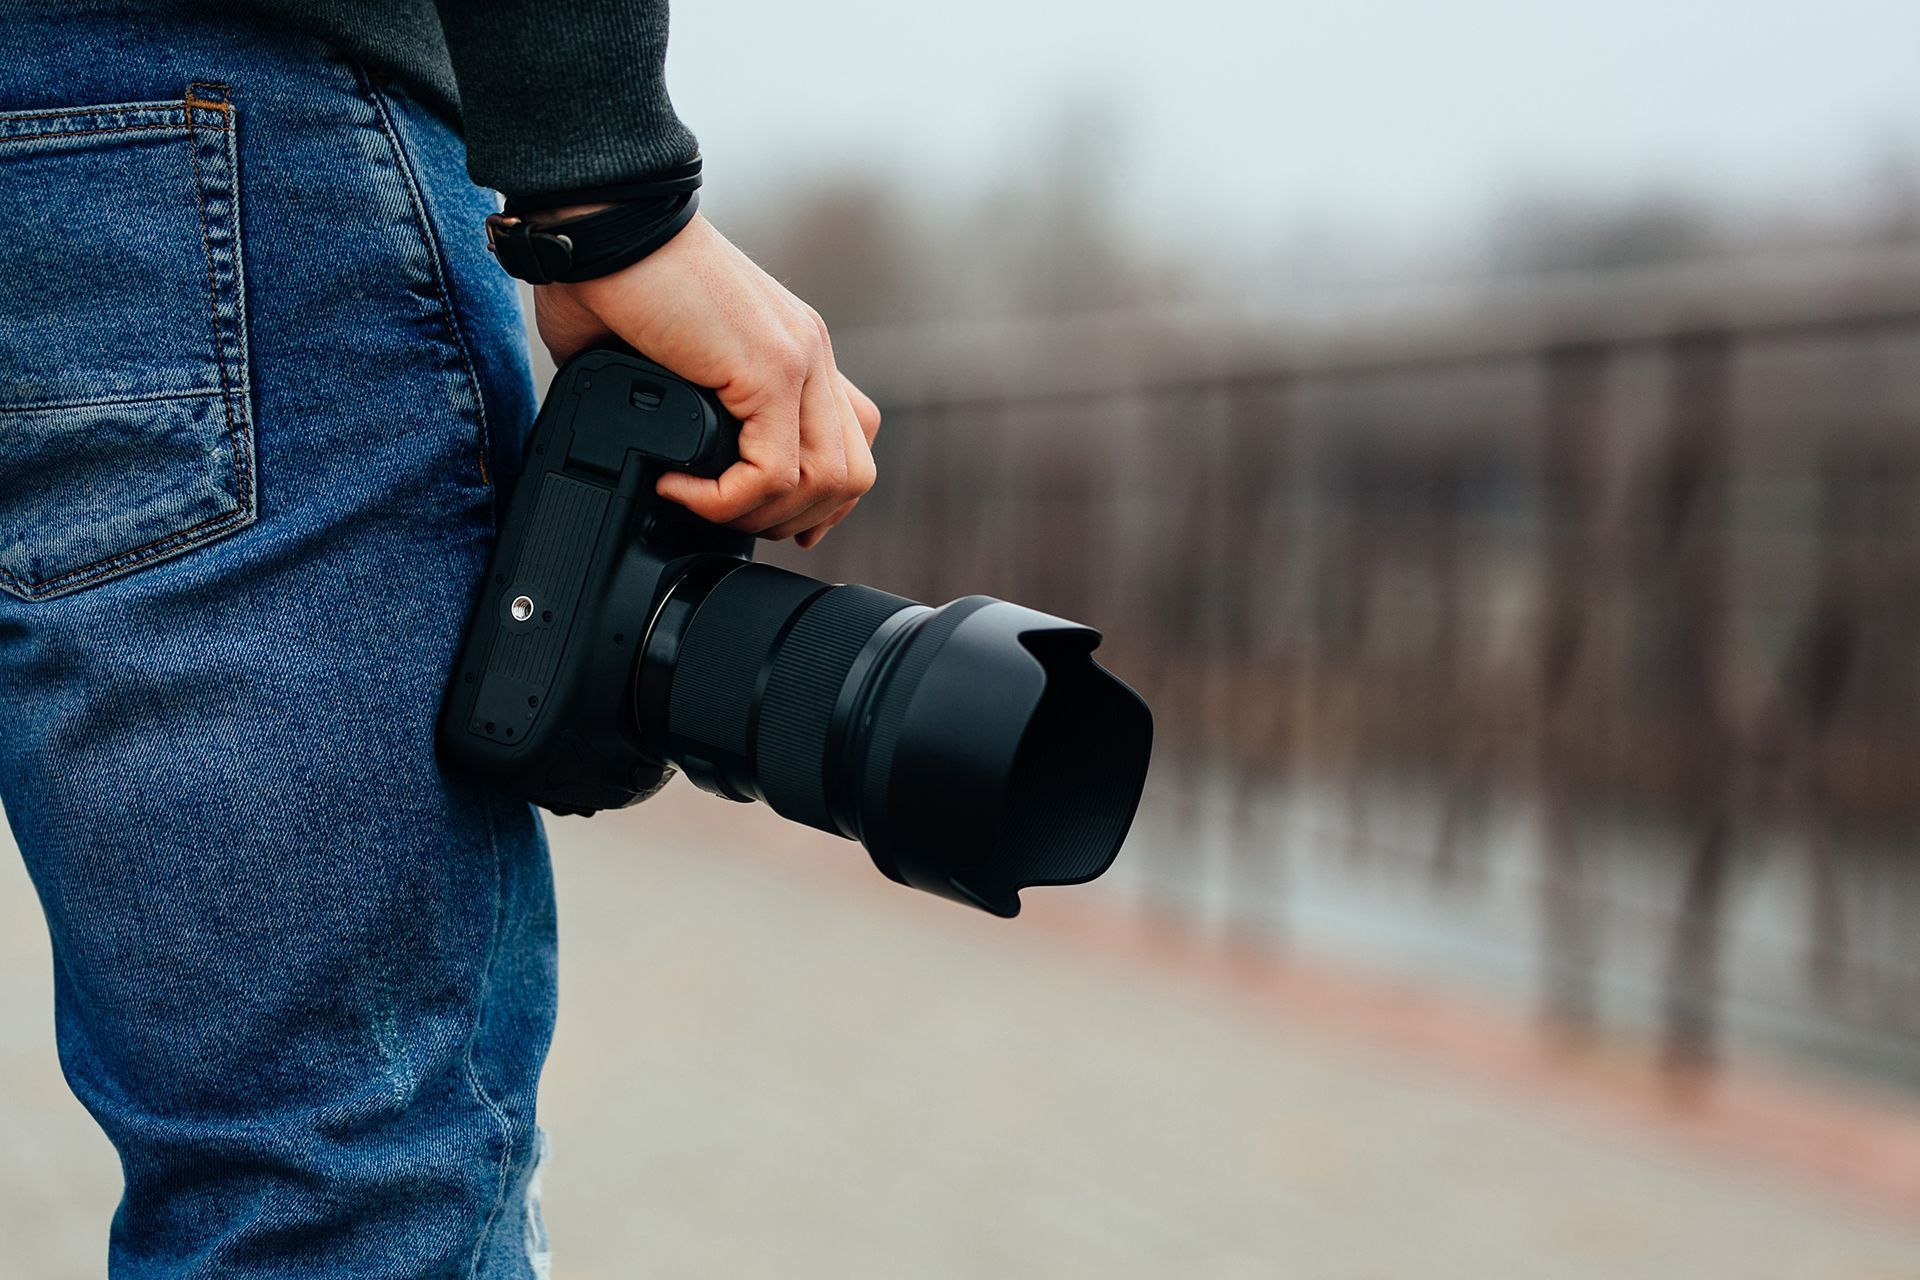 Male hands holding professional camera outdoors